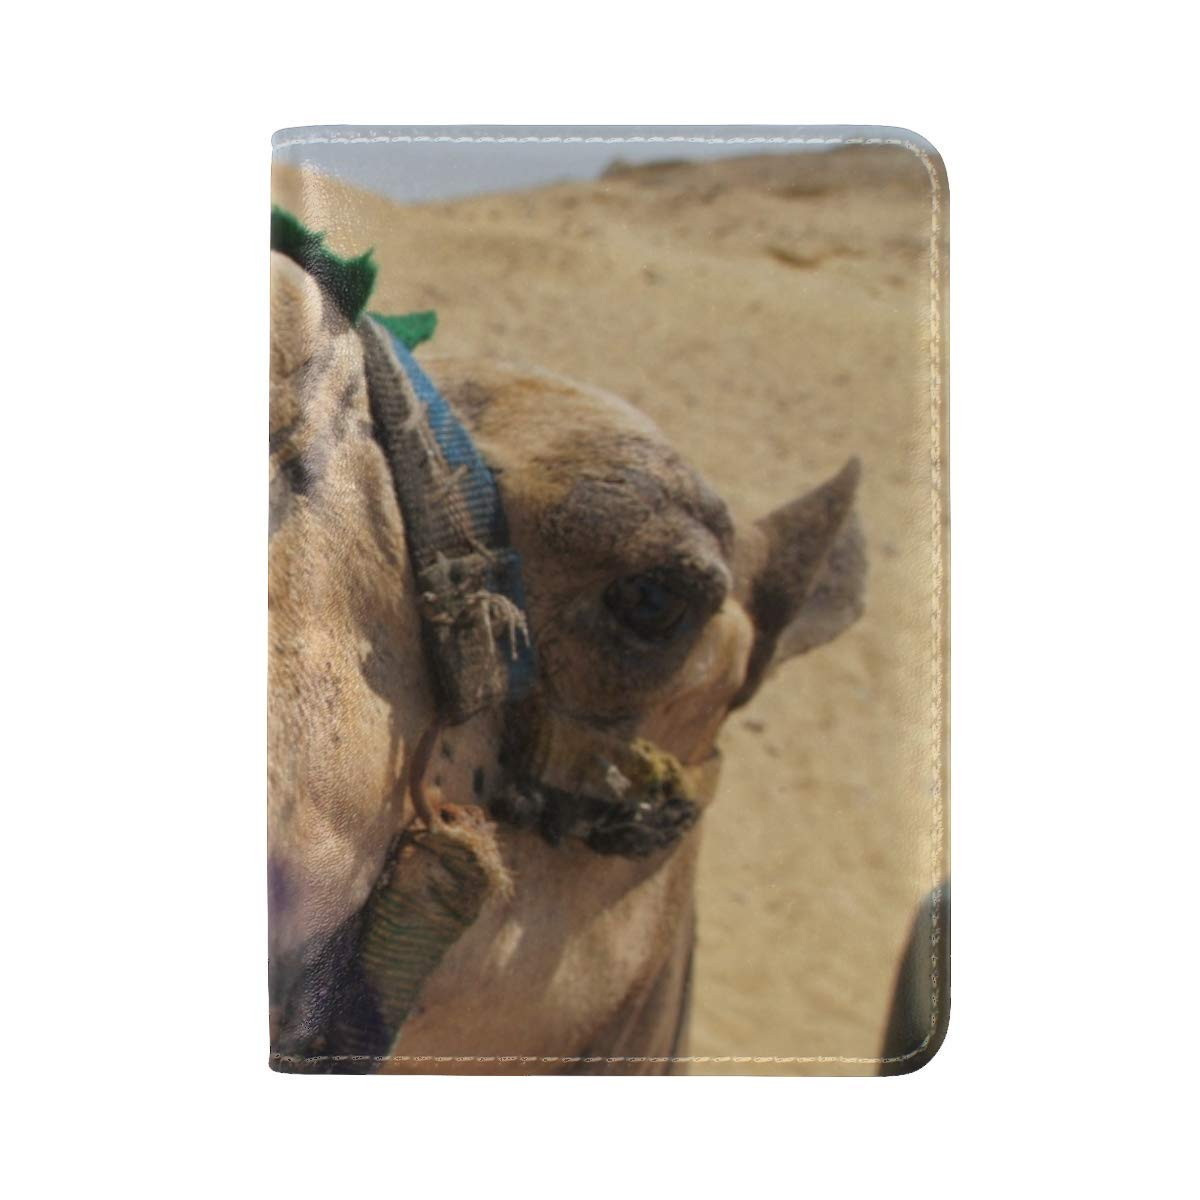 Camel Face Mouth Nose Desert Leather Passport Holder Cover Case Travel One Pocket